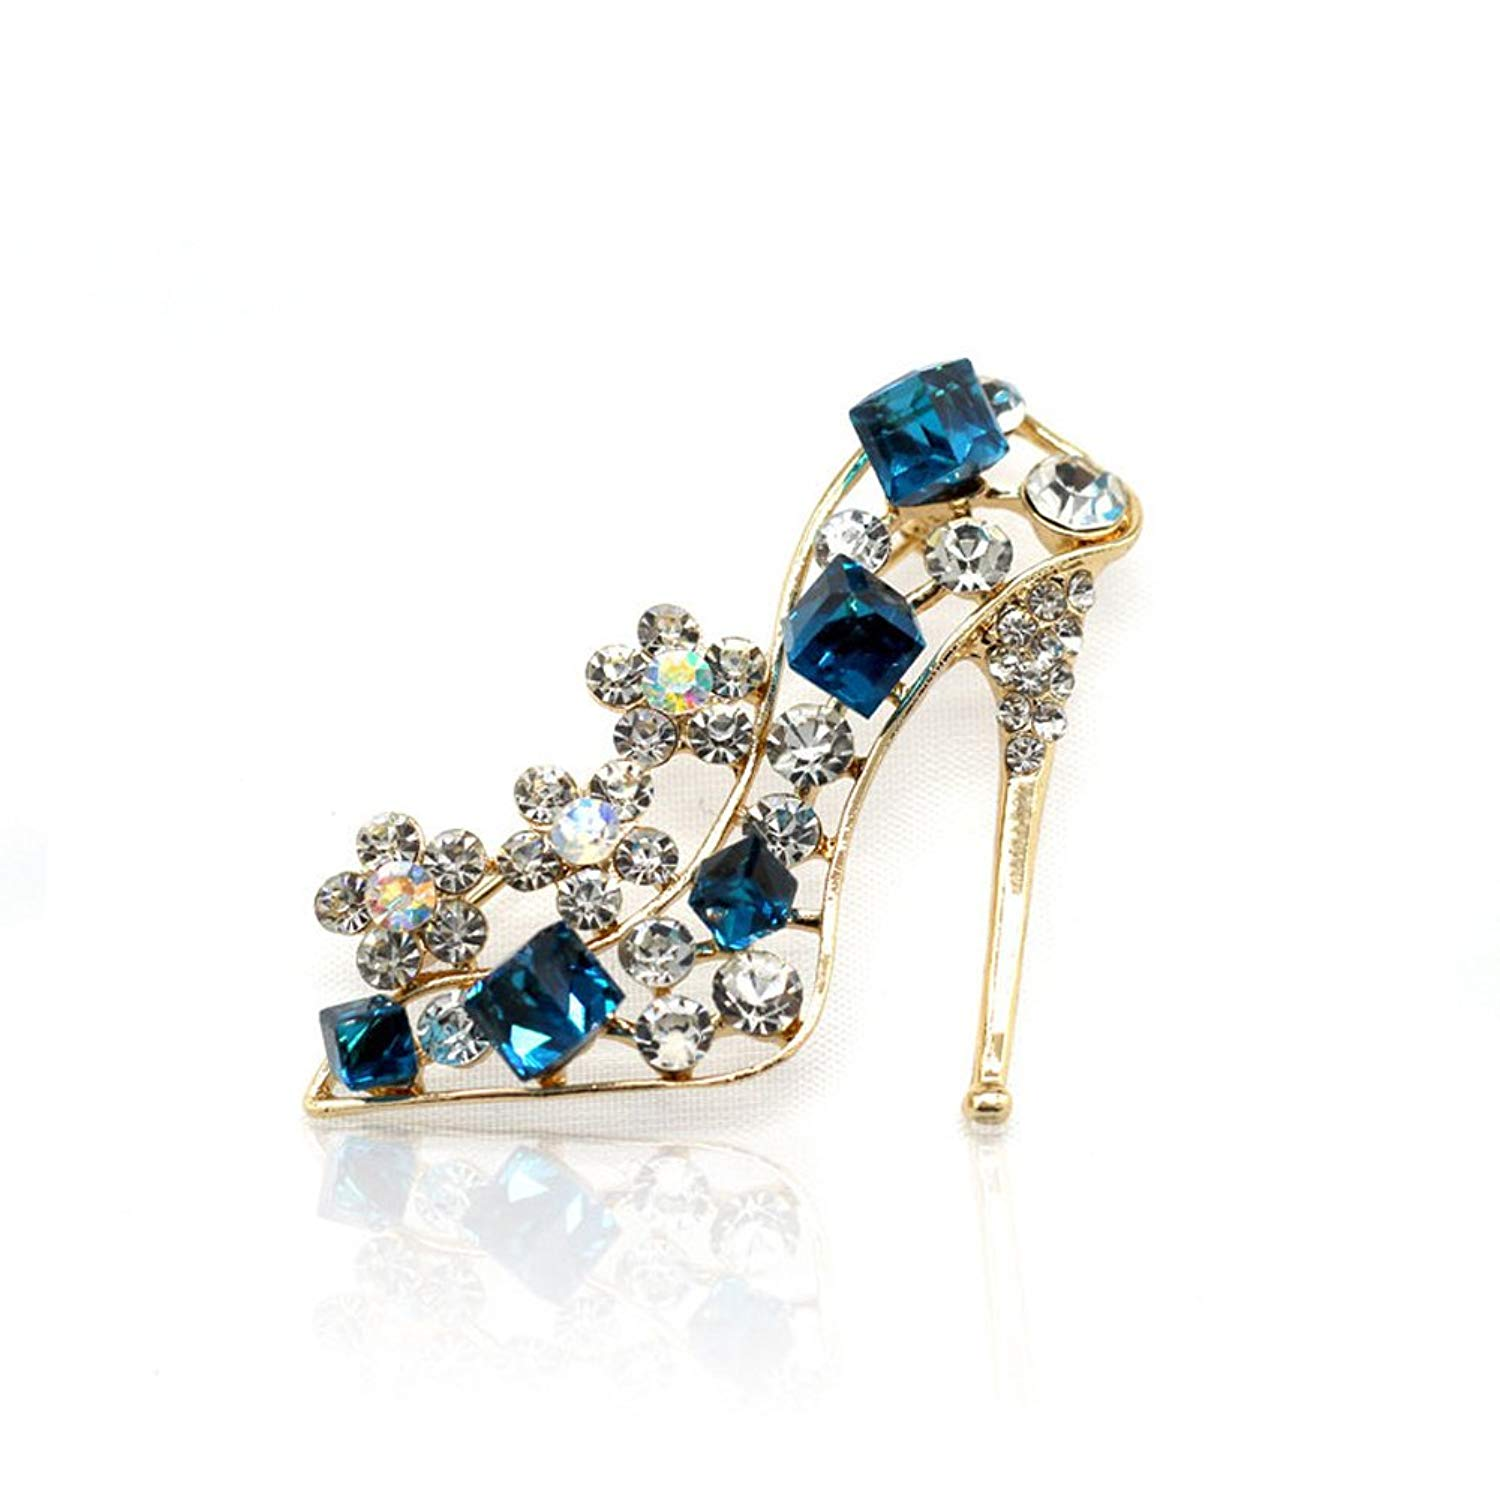 Andyshi Fashion Crystal Jewelry Accessories High-Heeled Shoes Brooches Collar Needle